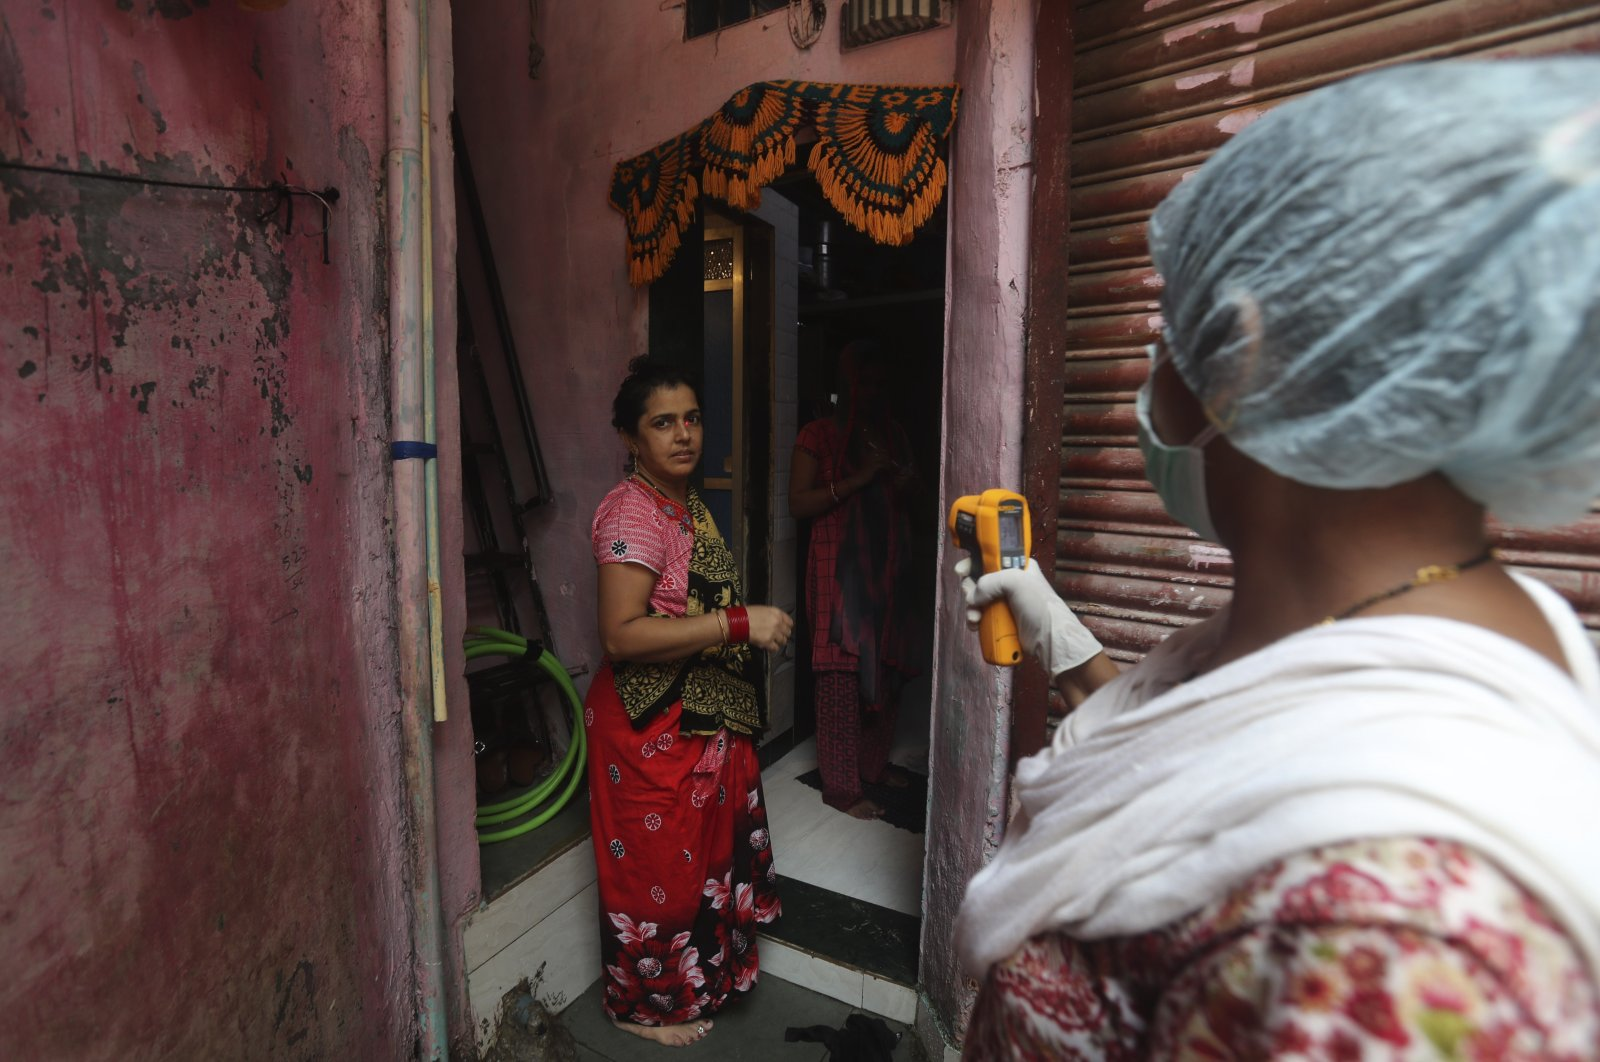 A health worker screens people for symptoms of COVID-19 in Dharavi, one of Asia's biggest slums, in Mumbai, India, Sept. 4, 2020. (AP Photo)